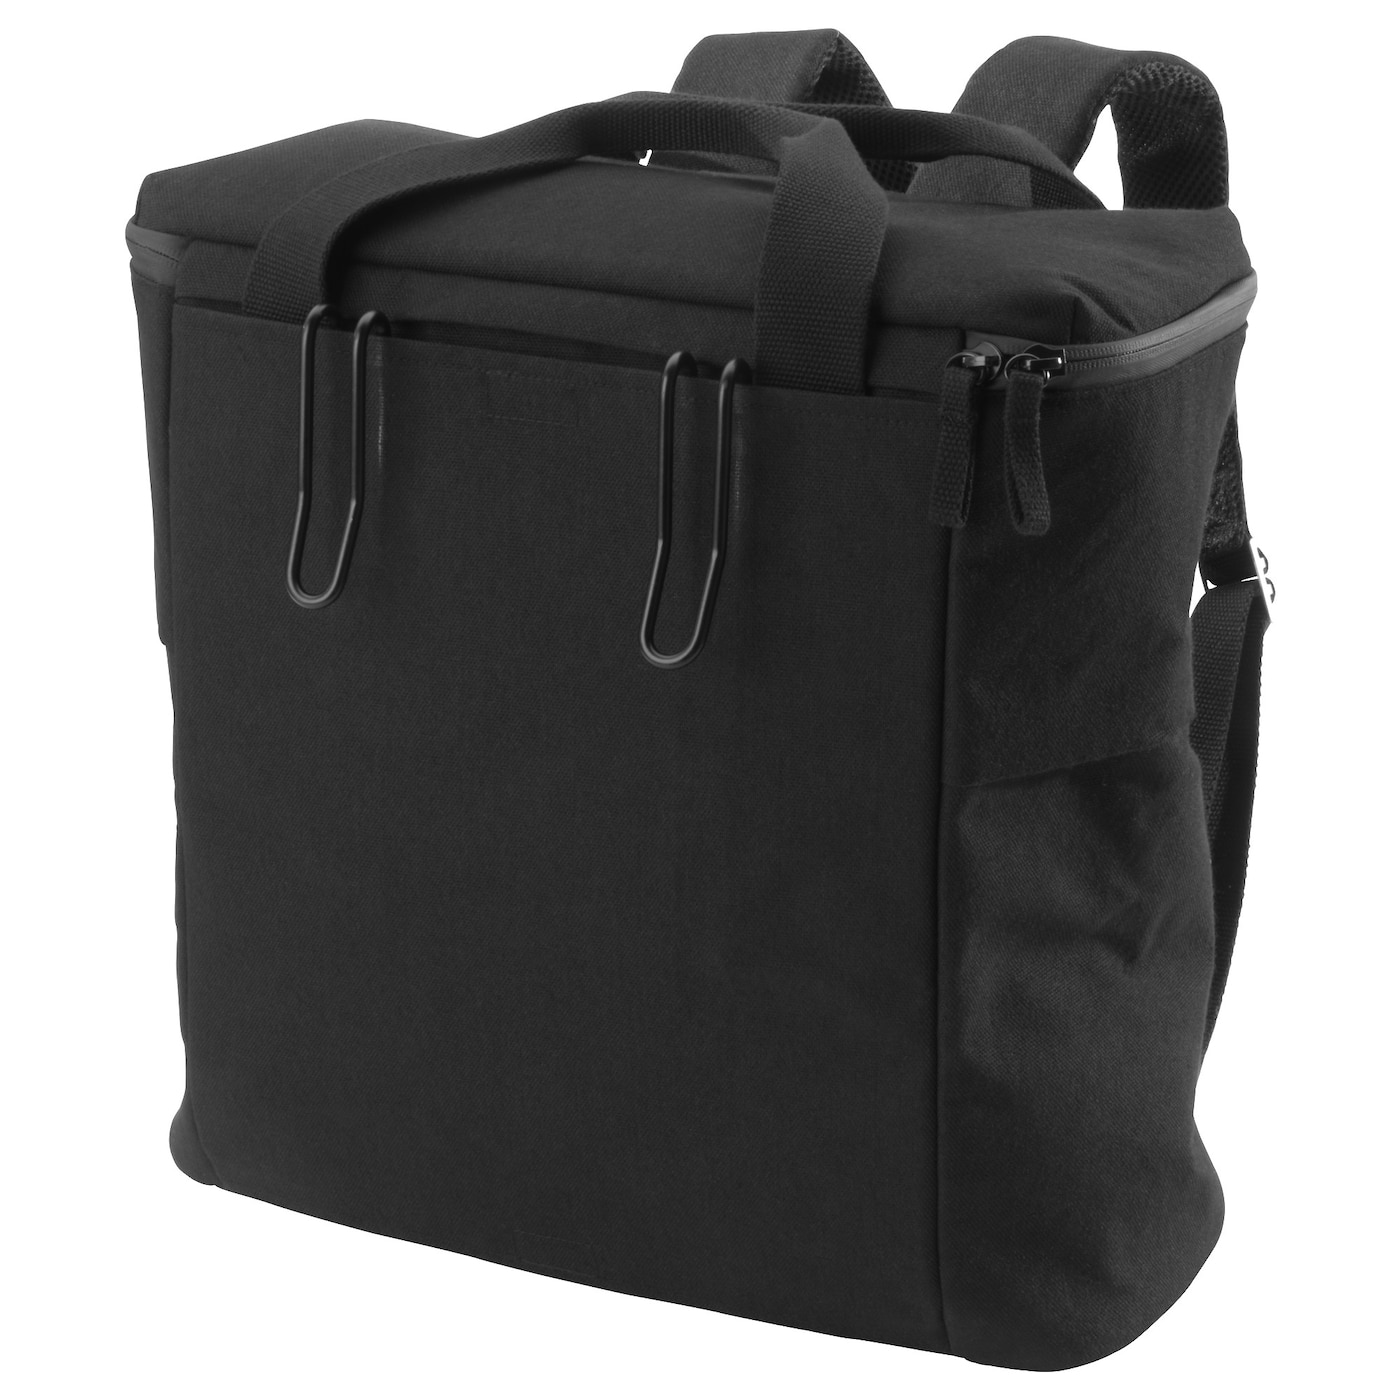 Ikea Sladda Bicycle Bag Rear The Bike Can Easily Be Converted Into A Back